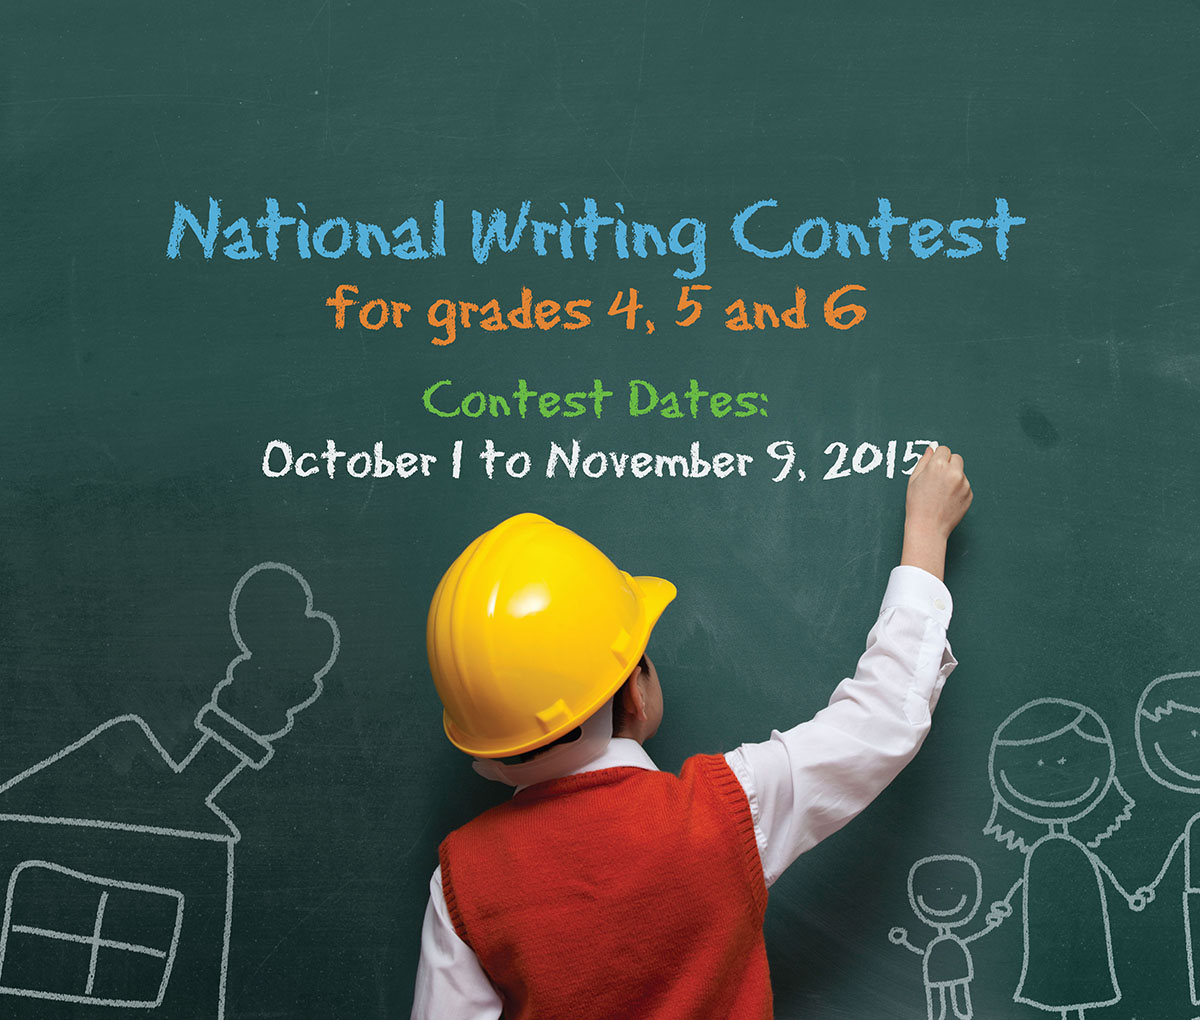 genworth meaning of home essay writing contest habitat wood buffalo genworth moh 2015 poster indd